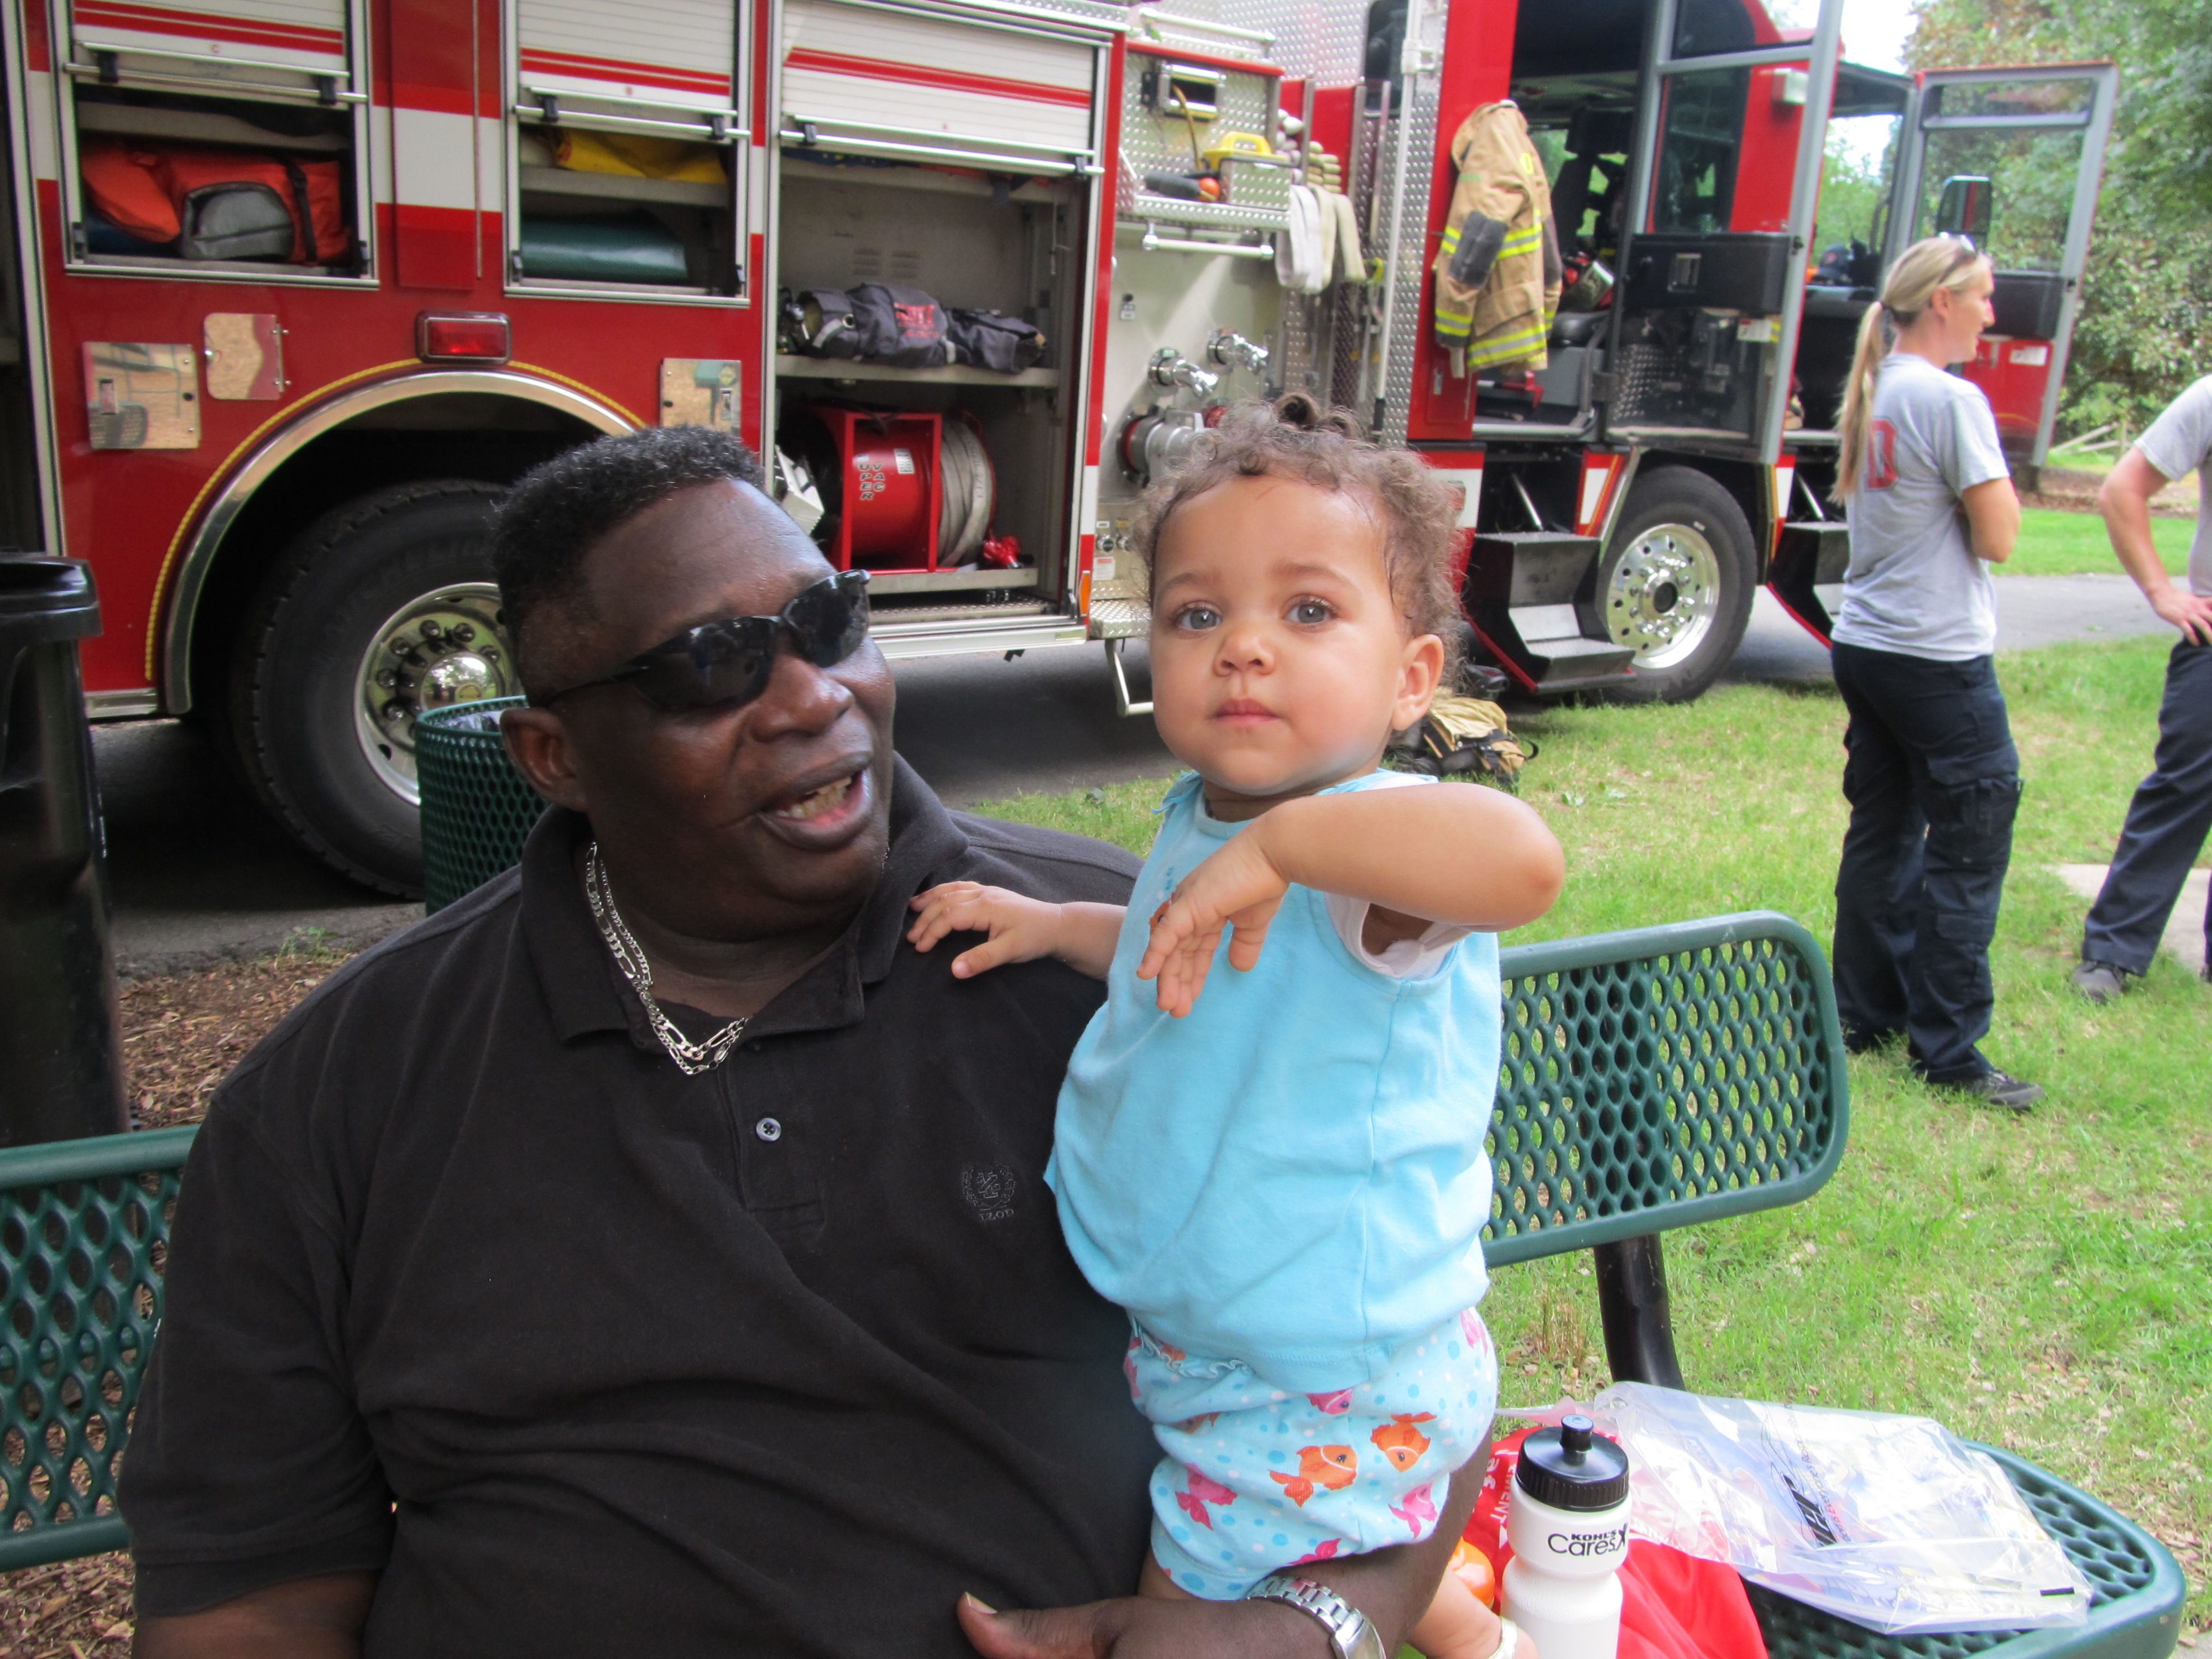 2014-08-05 NNO Man and baby